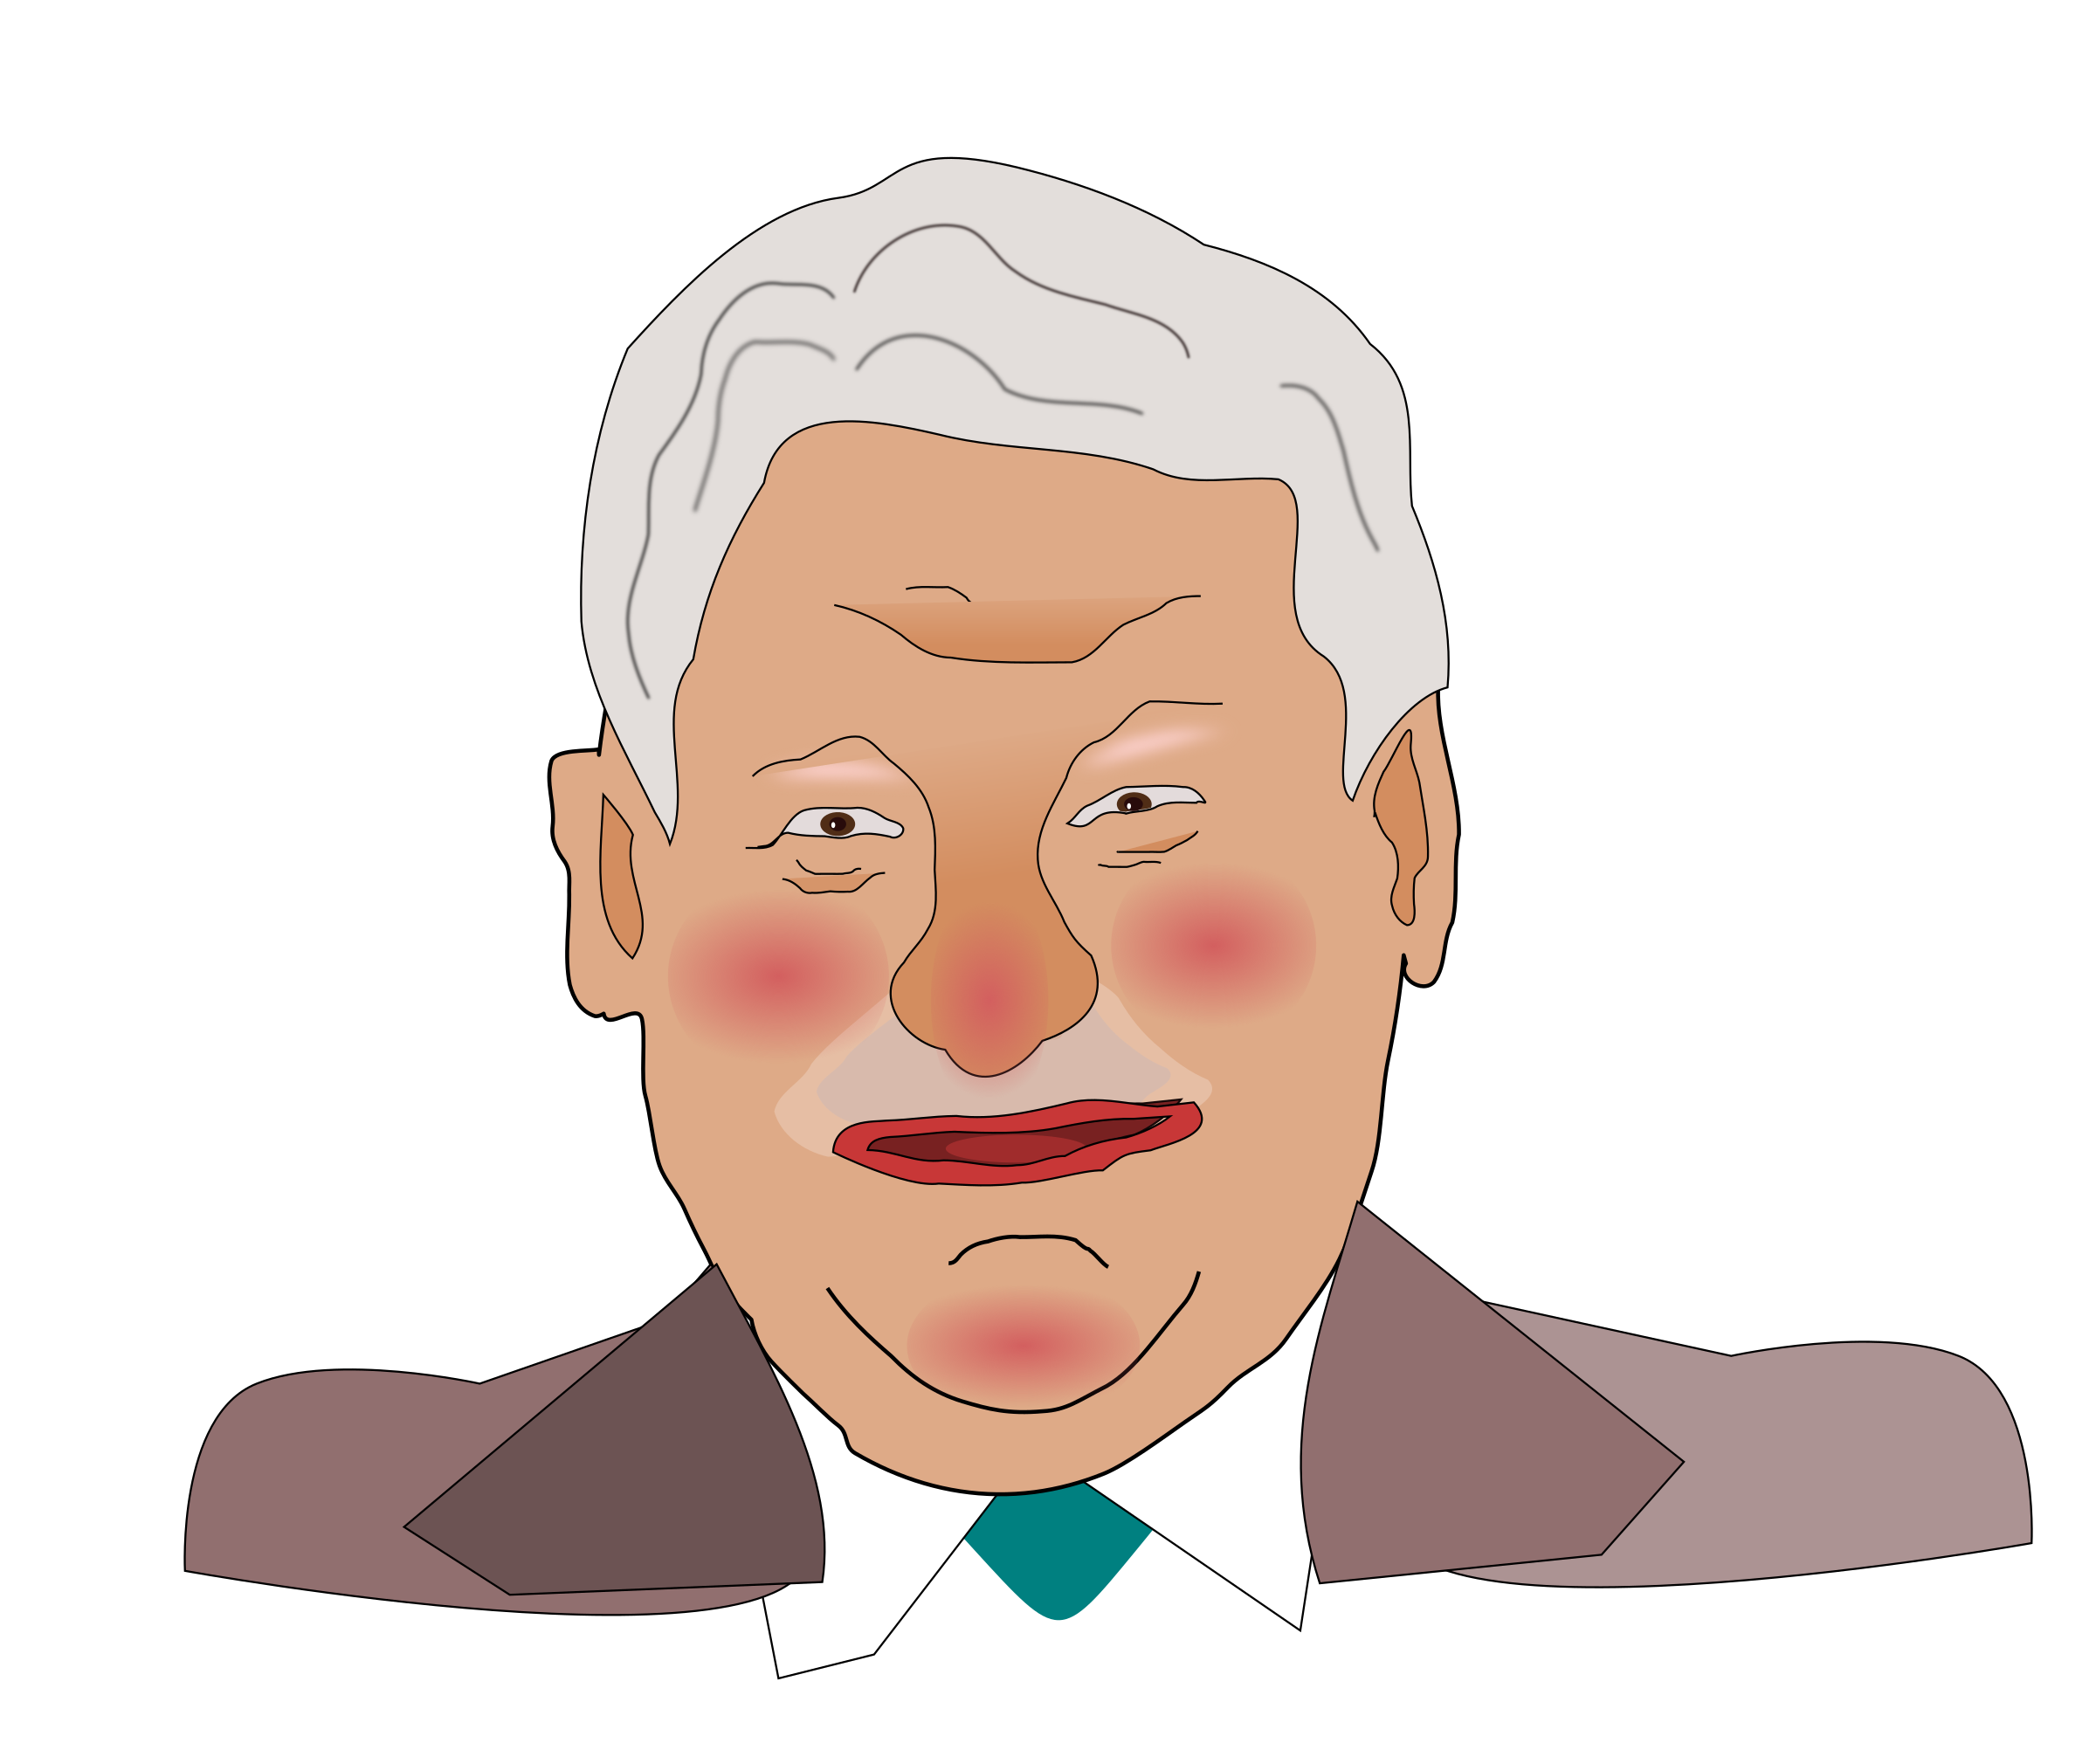 Boris Yeltsin by clausrei